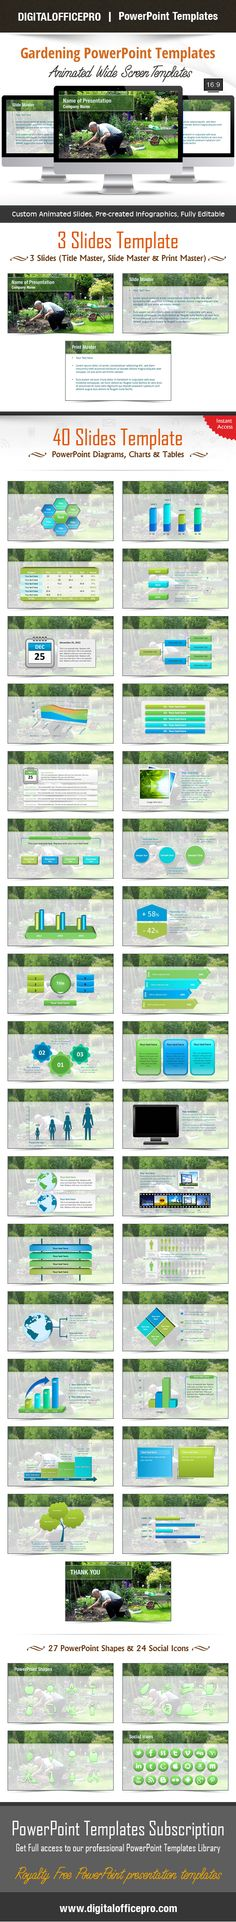 Green Geometric PowerPoint Template Backgrounds - summer powerpoint template